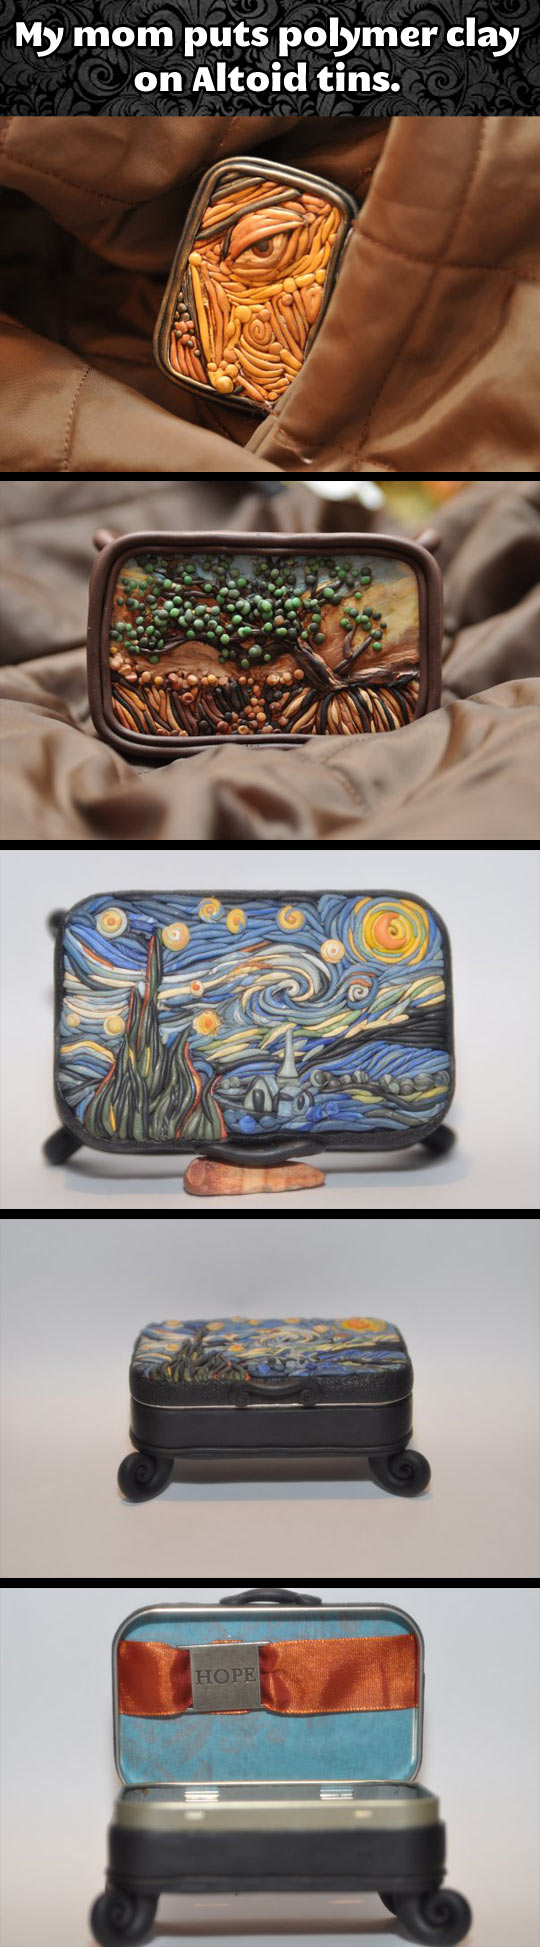 cool-art-polymer-clay-Altoid-tins